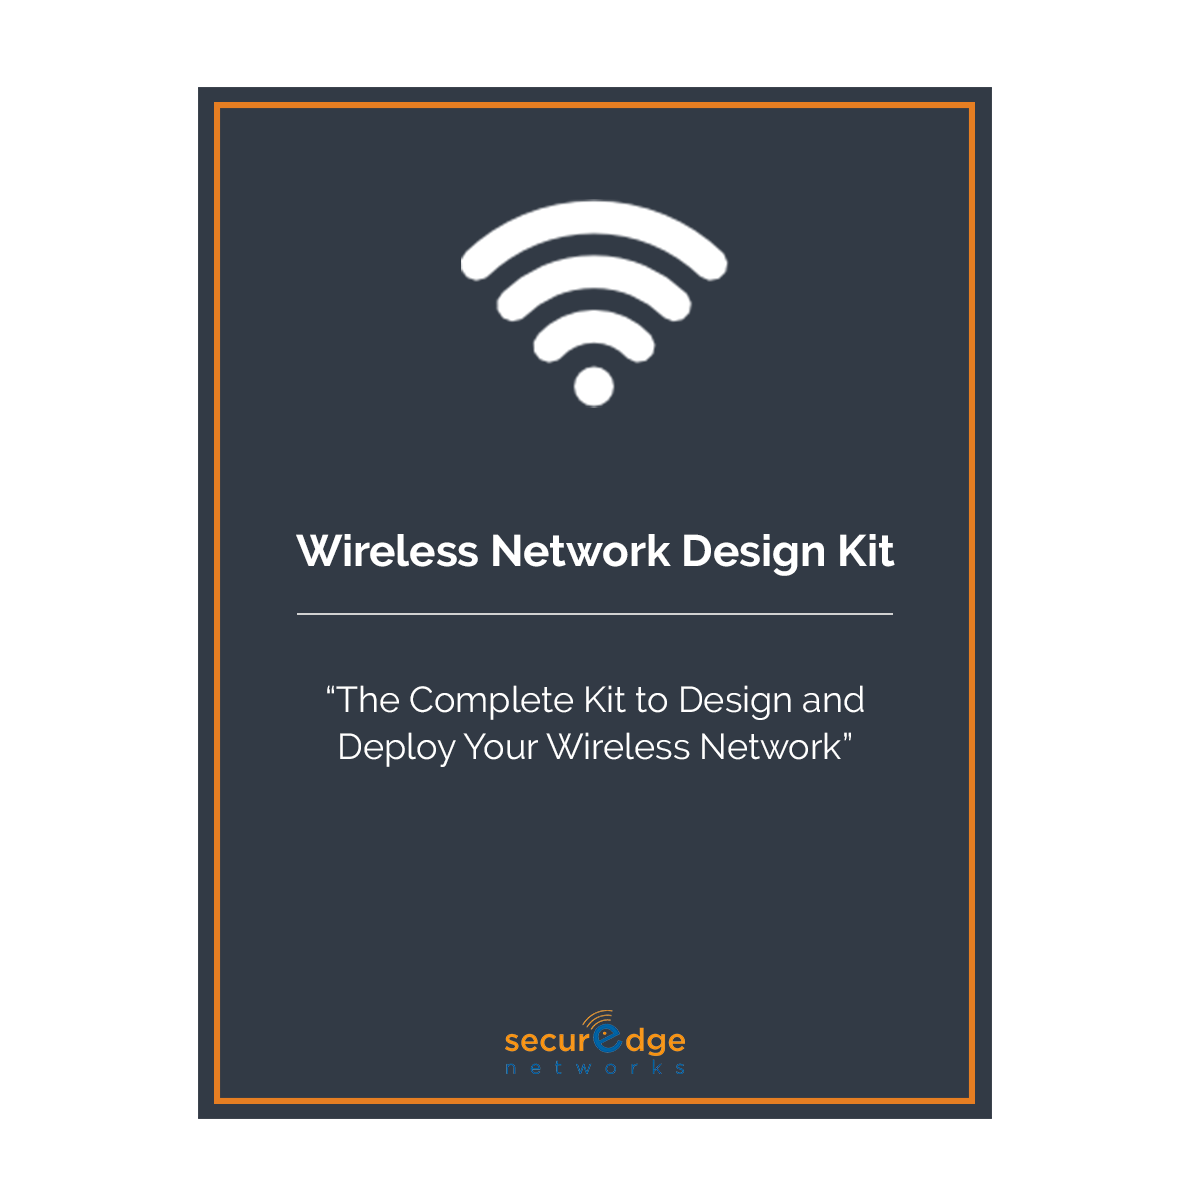 wireless network design kit